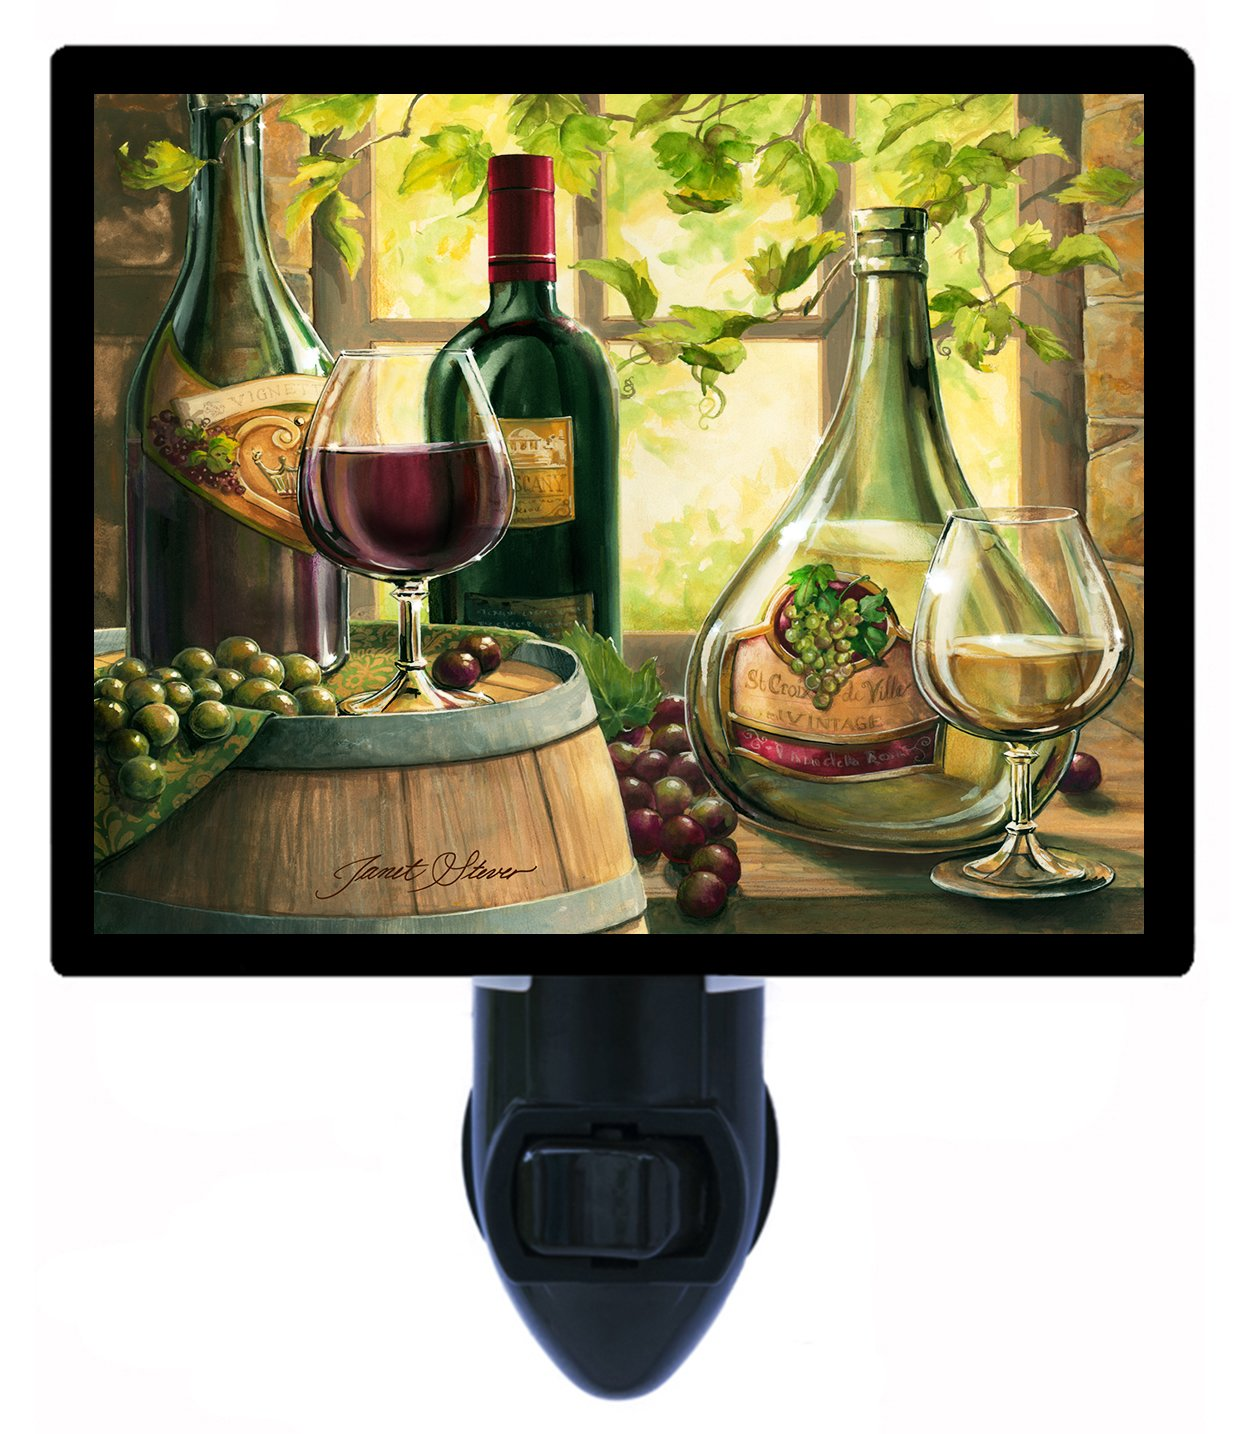 Night Light - Wine by the Window - Bottles and Grapes - Kitchen